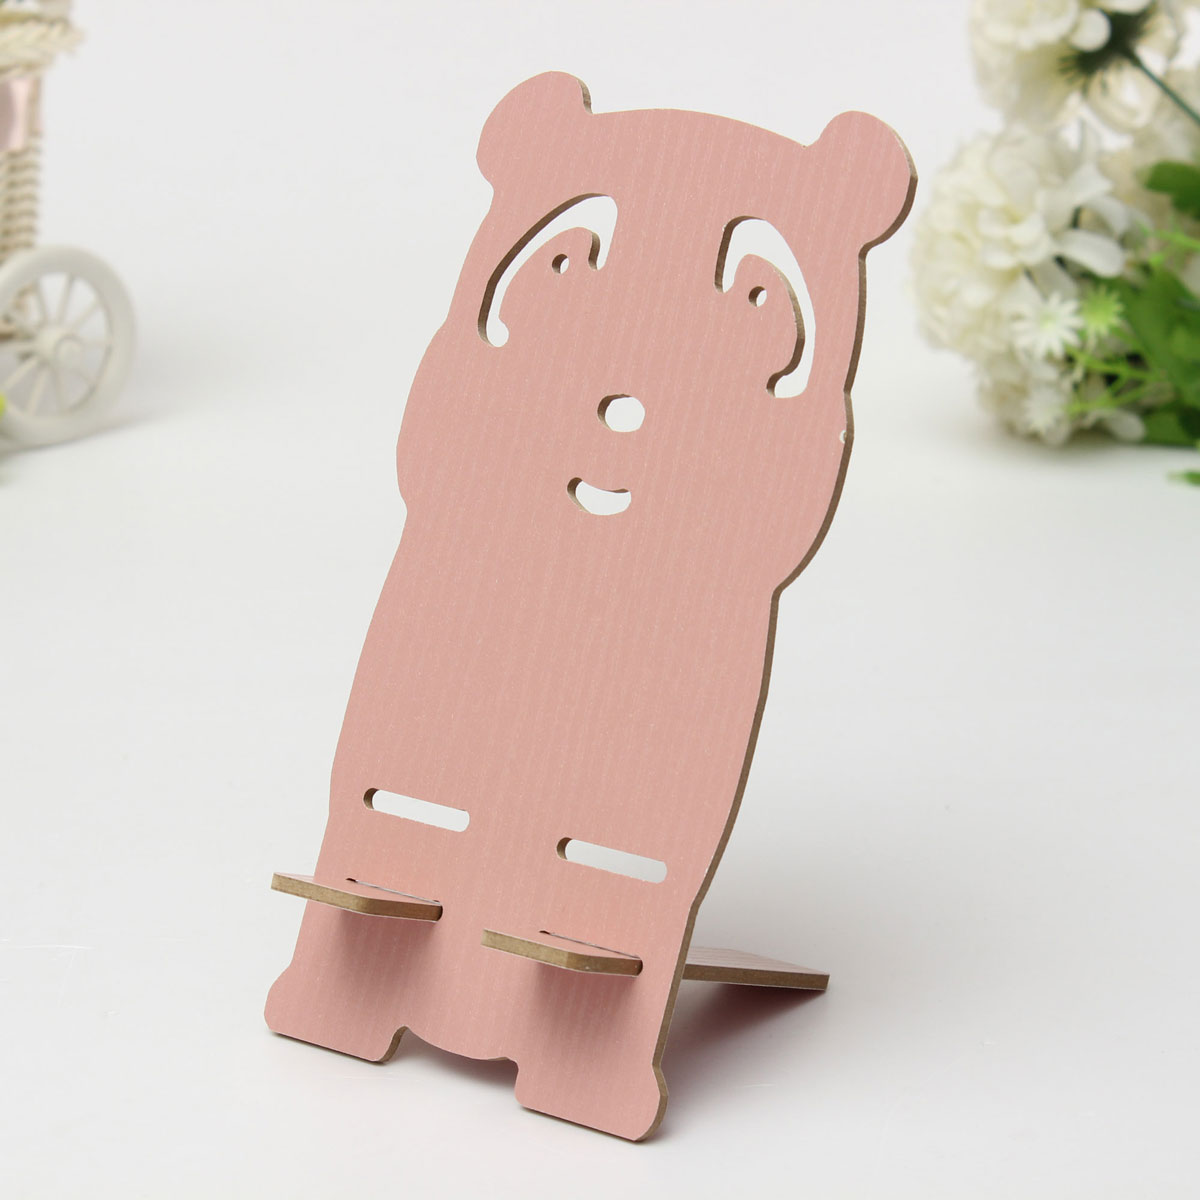 Wood Wooden Cute Panda Animal Desk Table Stand Holder For Cell Phone Multicolor | eBay